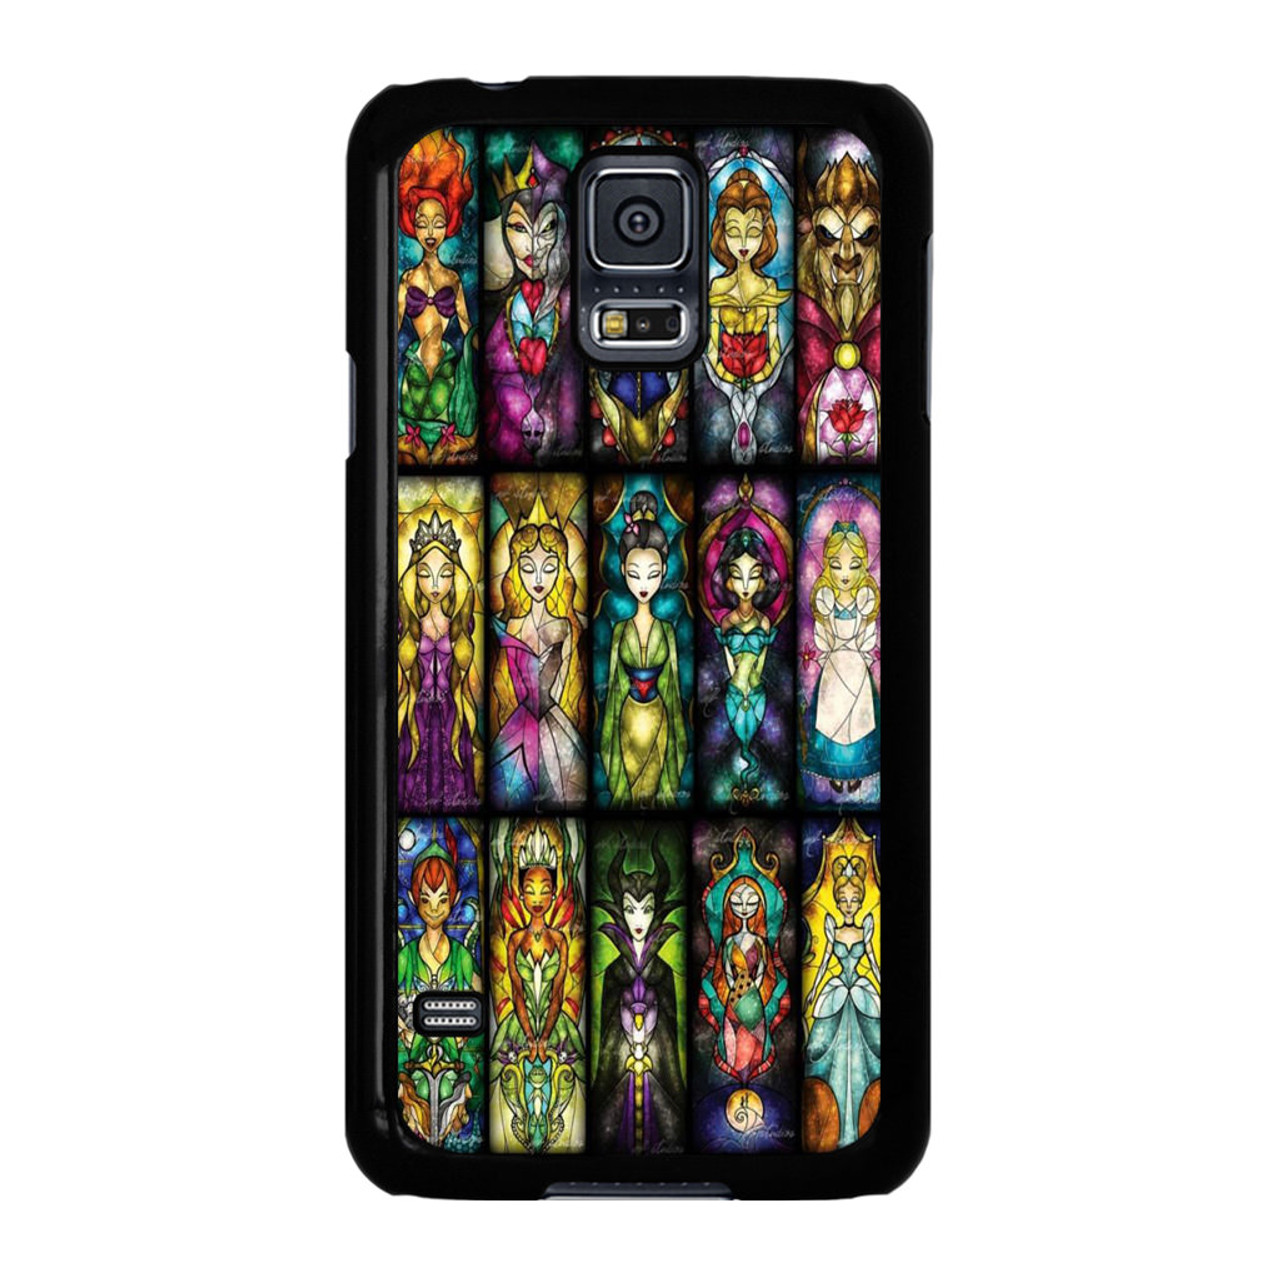 separation shoes 284a2 78a26 All Princess disney stained glass Samsung Galaxy S5 Case